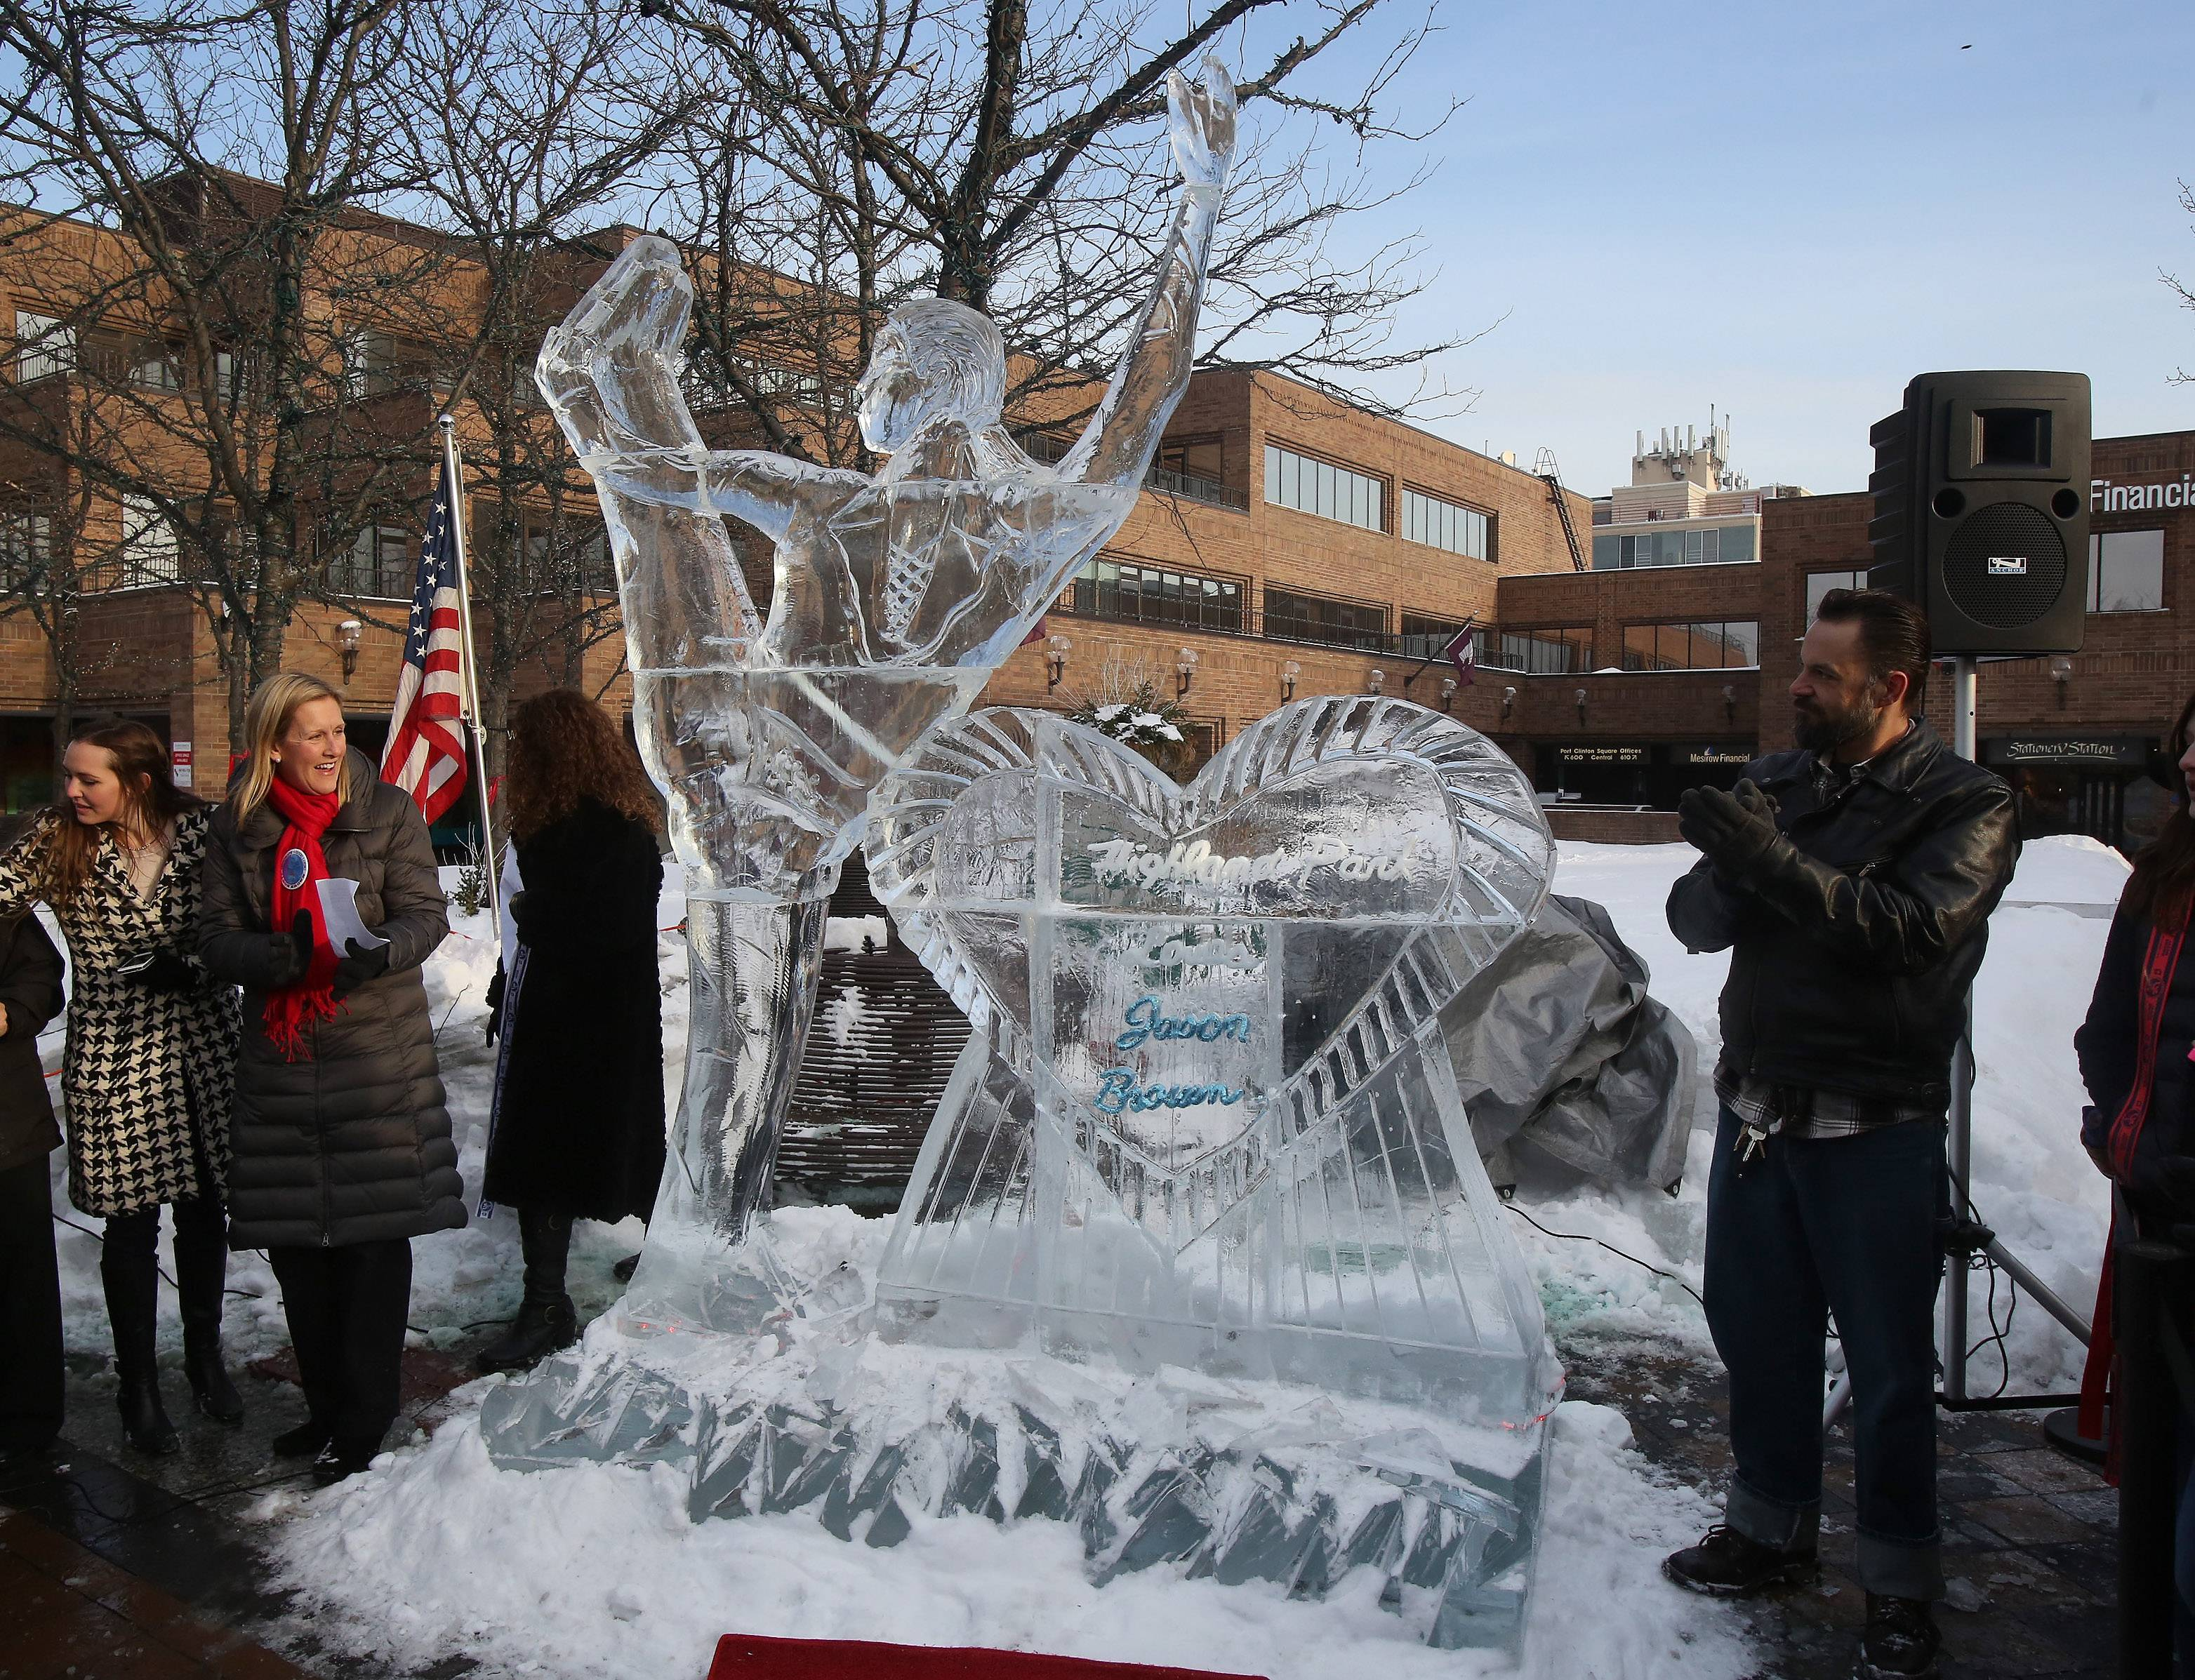 Highland Park Mayor Nancy Rotering, left, and ice sculptor Kristopher Duschen unveil the 10-foot ice sculpture of Olympic figure skater Jason Brown in the city's Port Clinton Square on Wednesday. Brown has won a bronze medal and is hoping for more this weekend when he skates in the individual events.